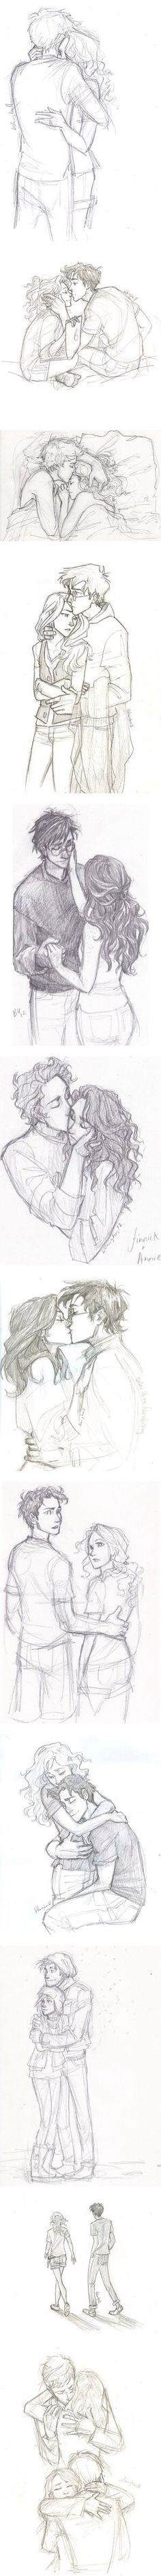 Drawings by Burdge. I like this burdge person. Couple Sketch, Couple Drawings, Girl Sketch, Couple Poses Drawing, Drawing Sketches, Art Drawings, Pencil Drawings, Hipster Drawings, Drawings Of Love